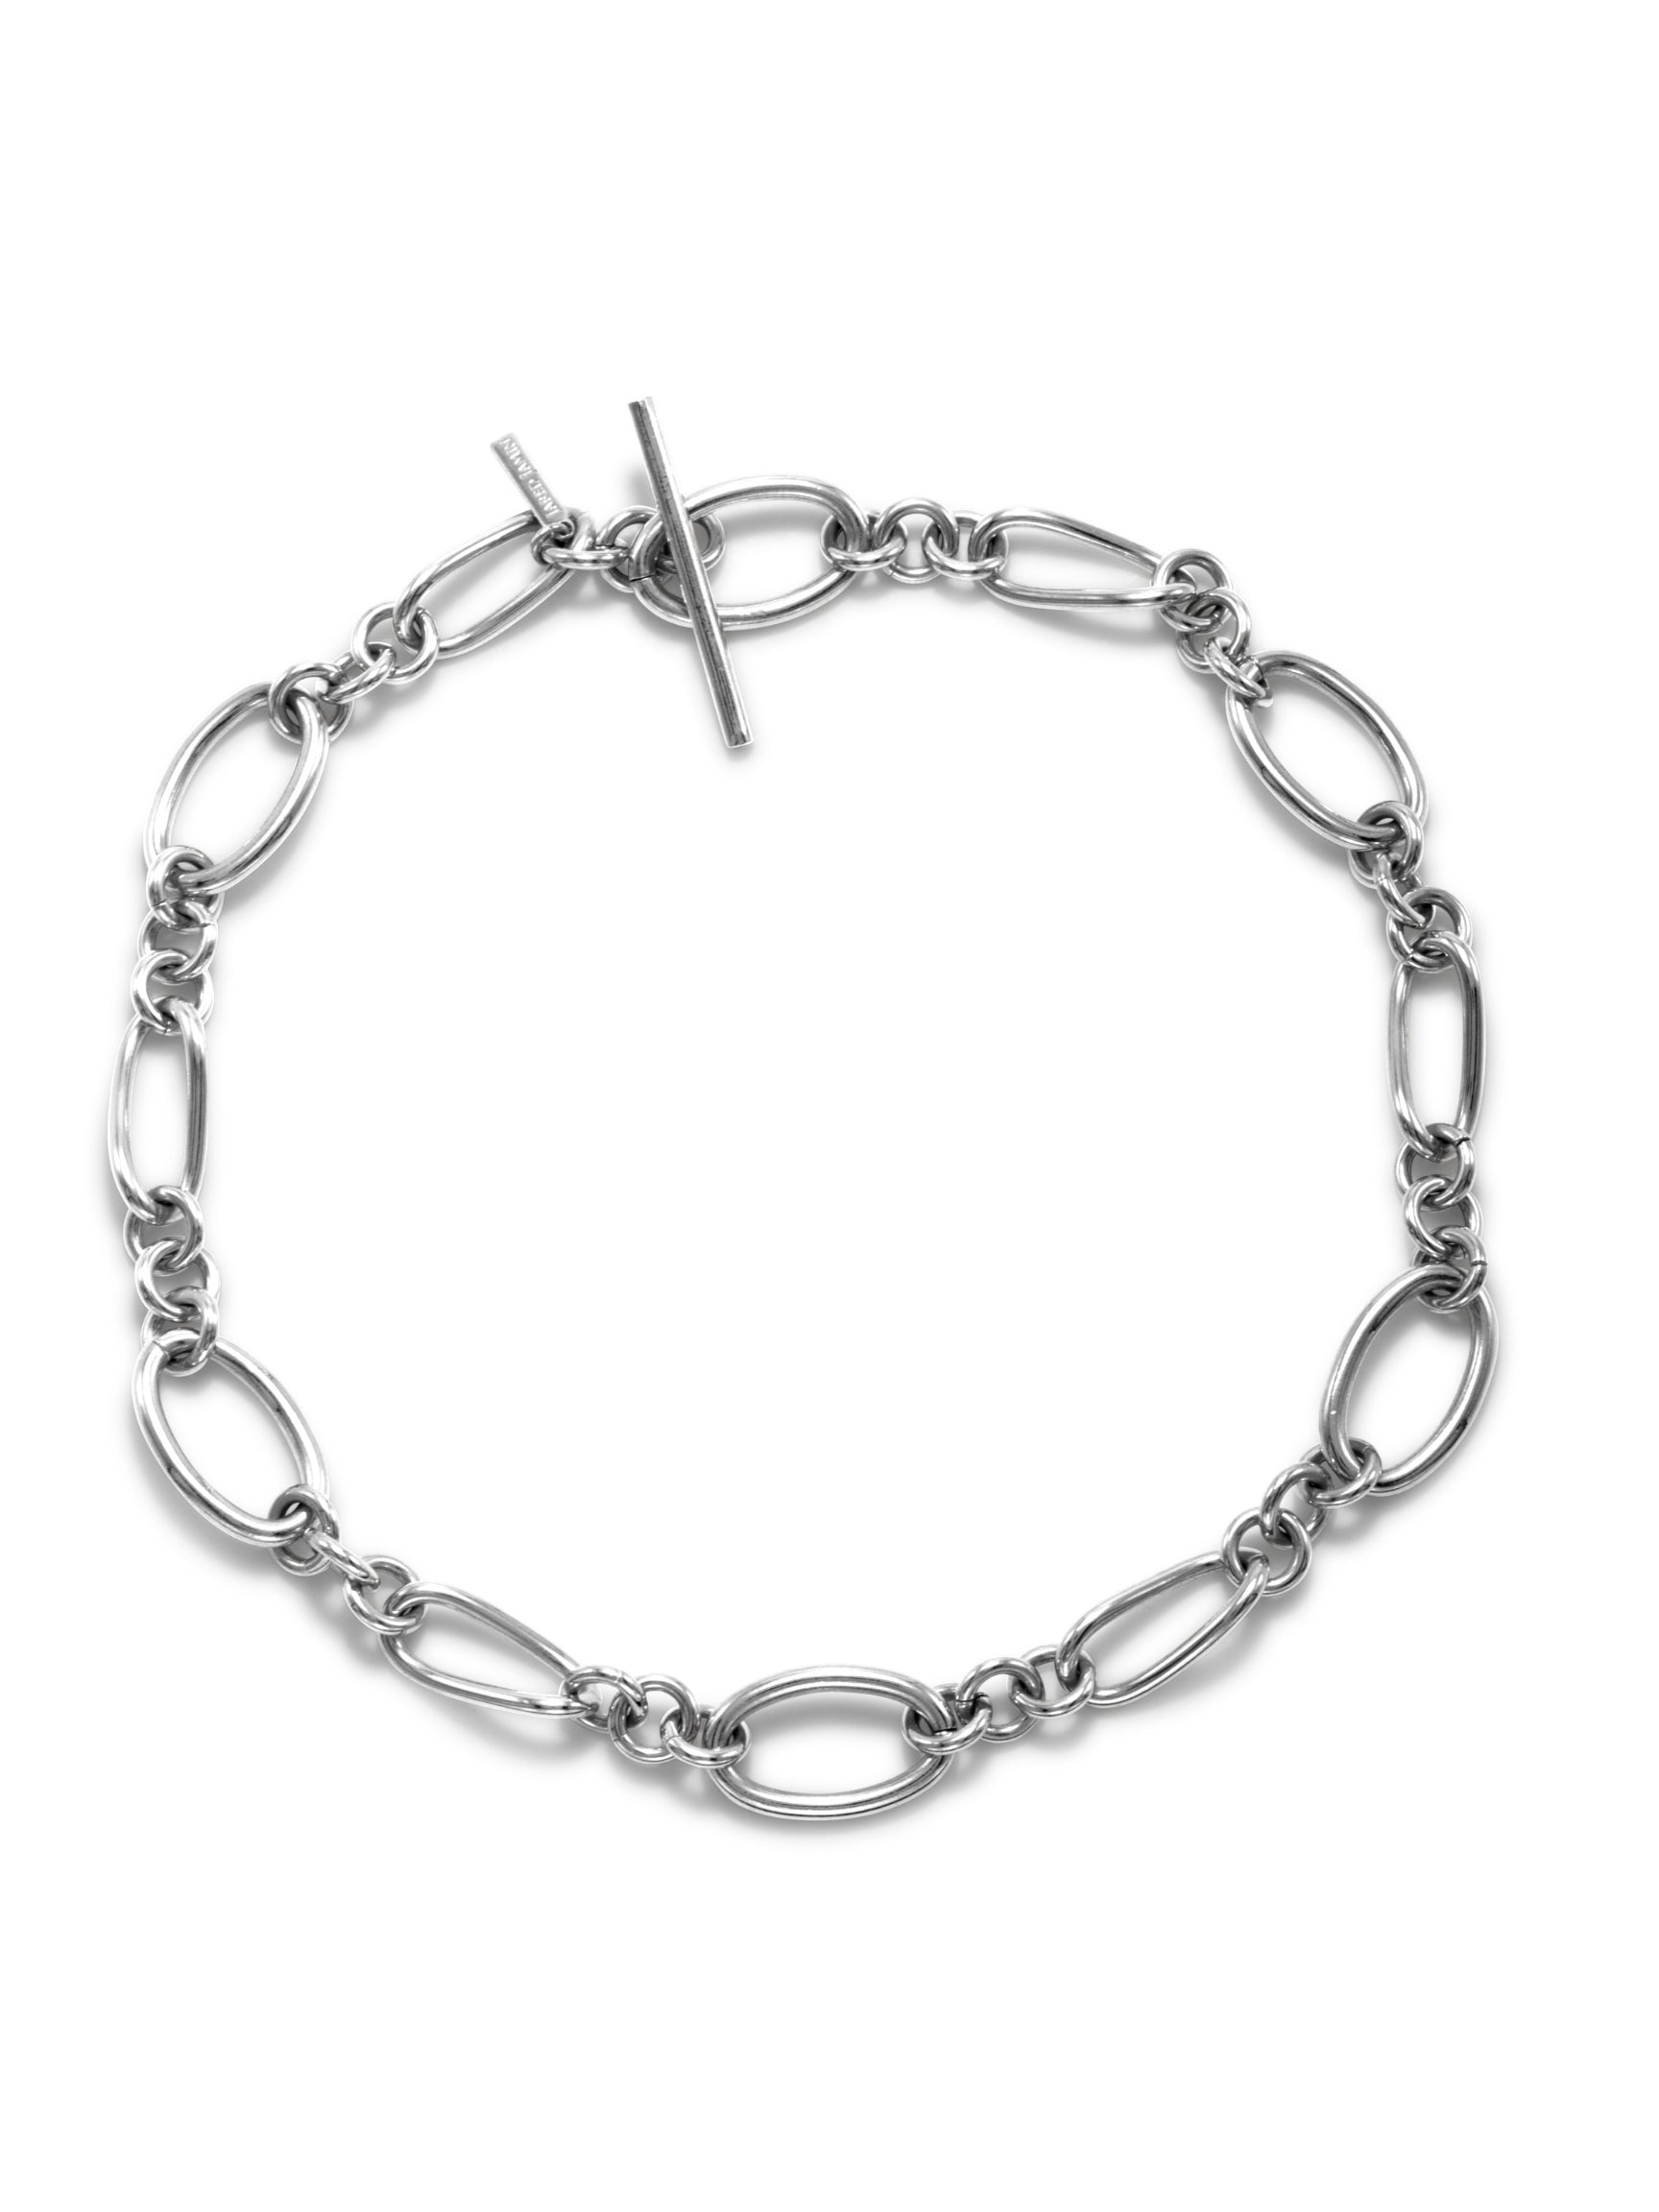 Silver Ophelia Choker Chain Necklace